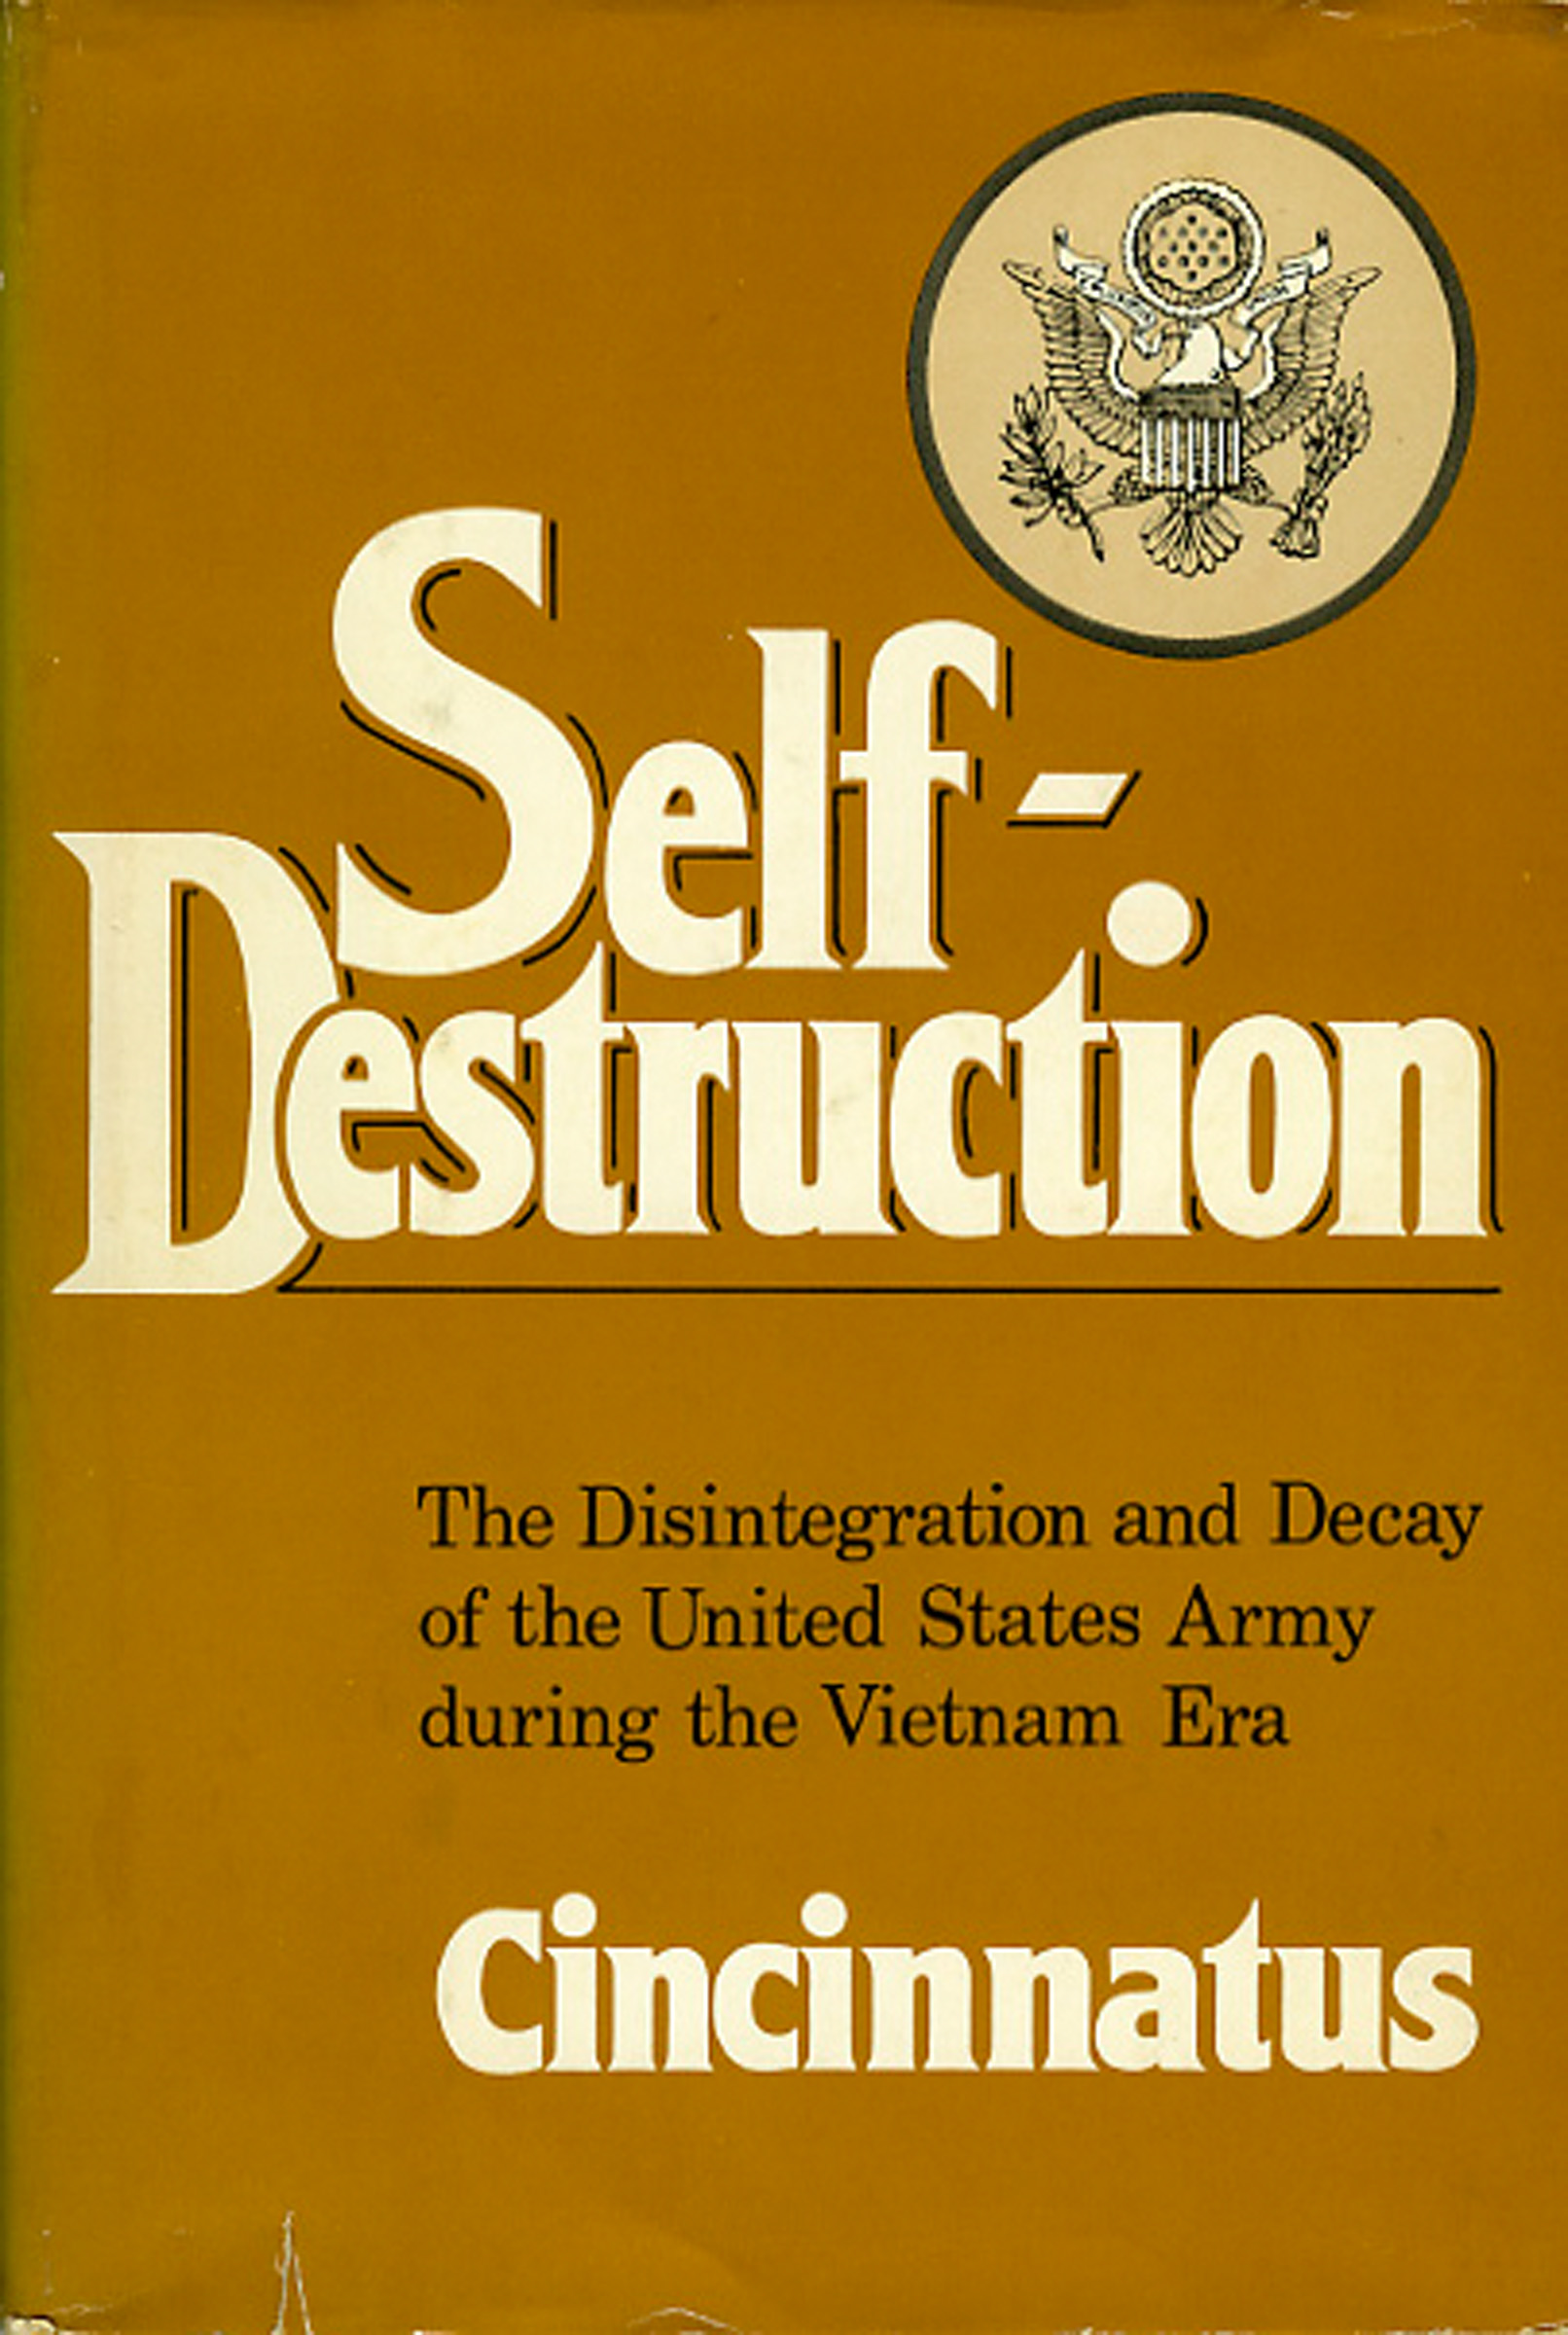 Self-Destruction